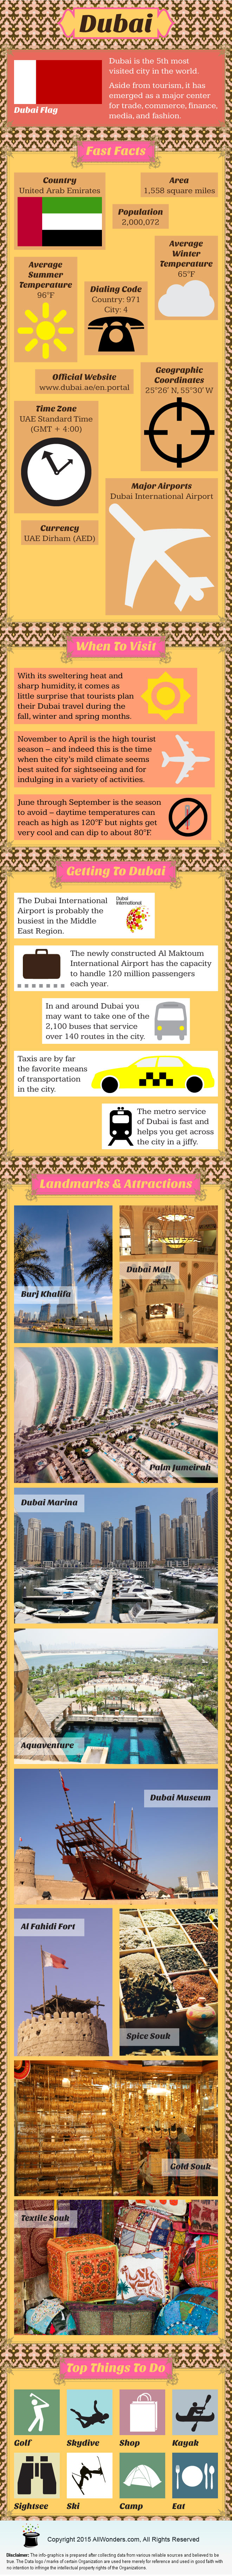 Dubai Travel Infographic